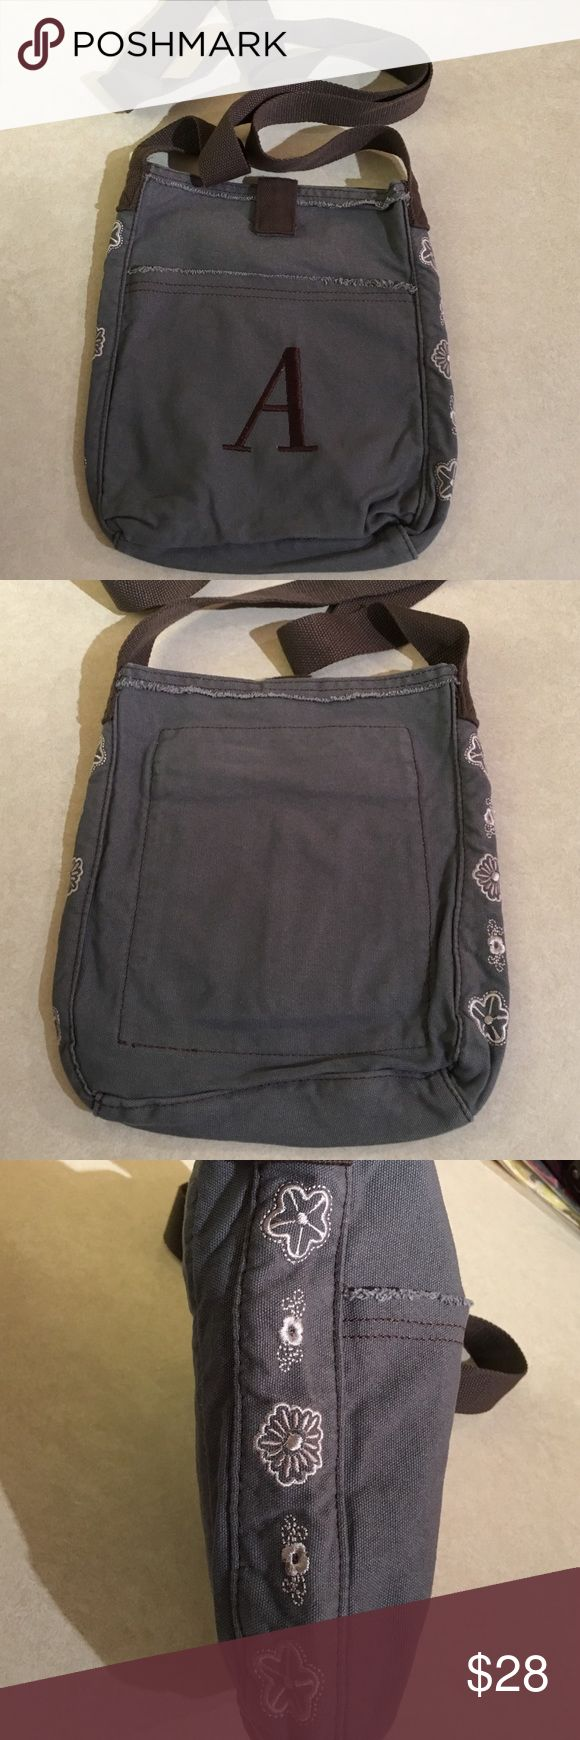 """NWOT Thirty-One Retro Metro Crossbody bag NWOT Thirty-One Retro Metro Crossbody bag in Grey with embroidered """"A"""" in brown thread. Thirty-One Bags Crossbody Bags"""